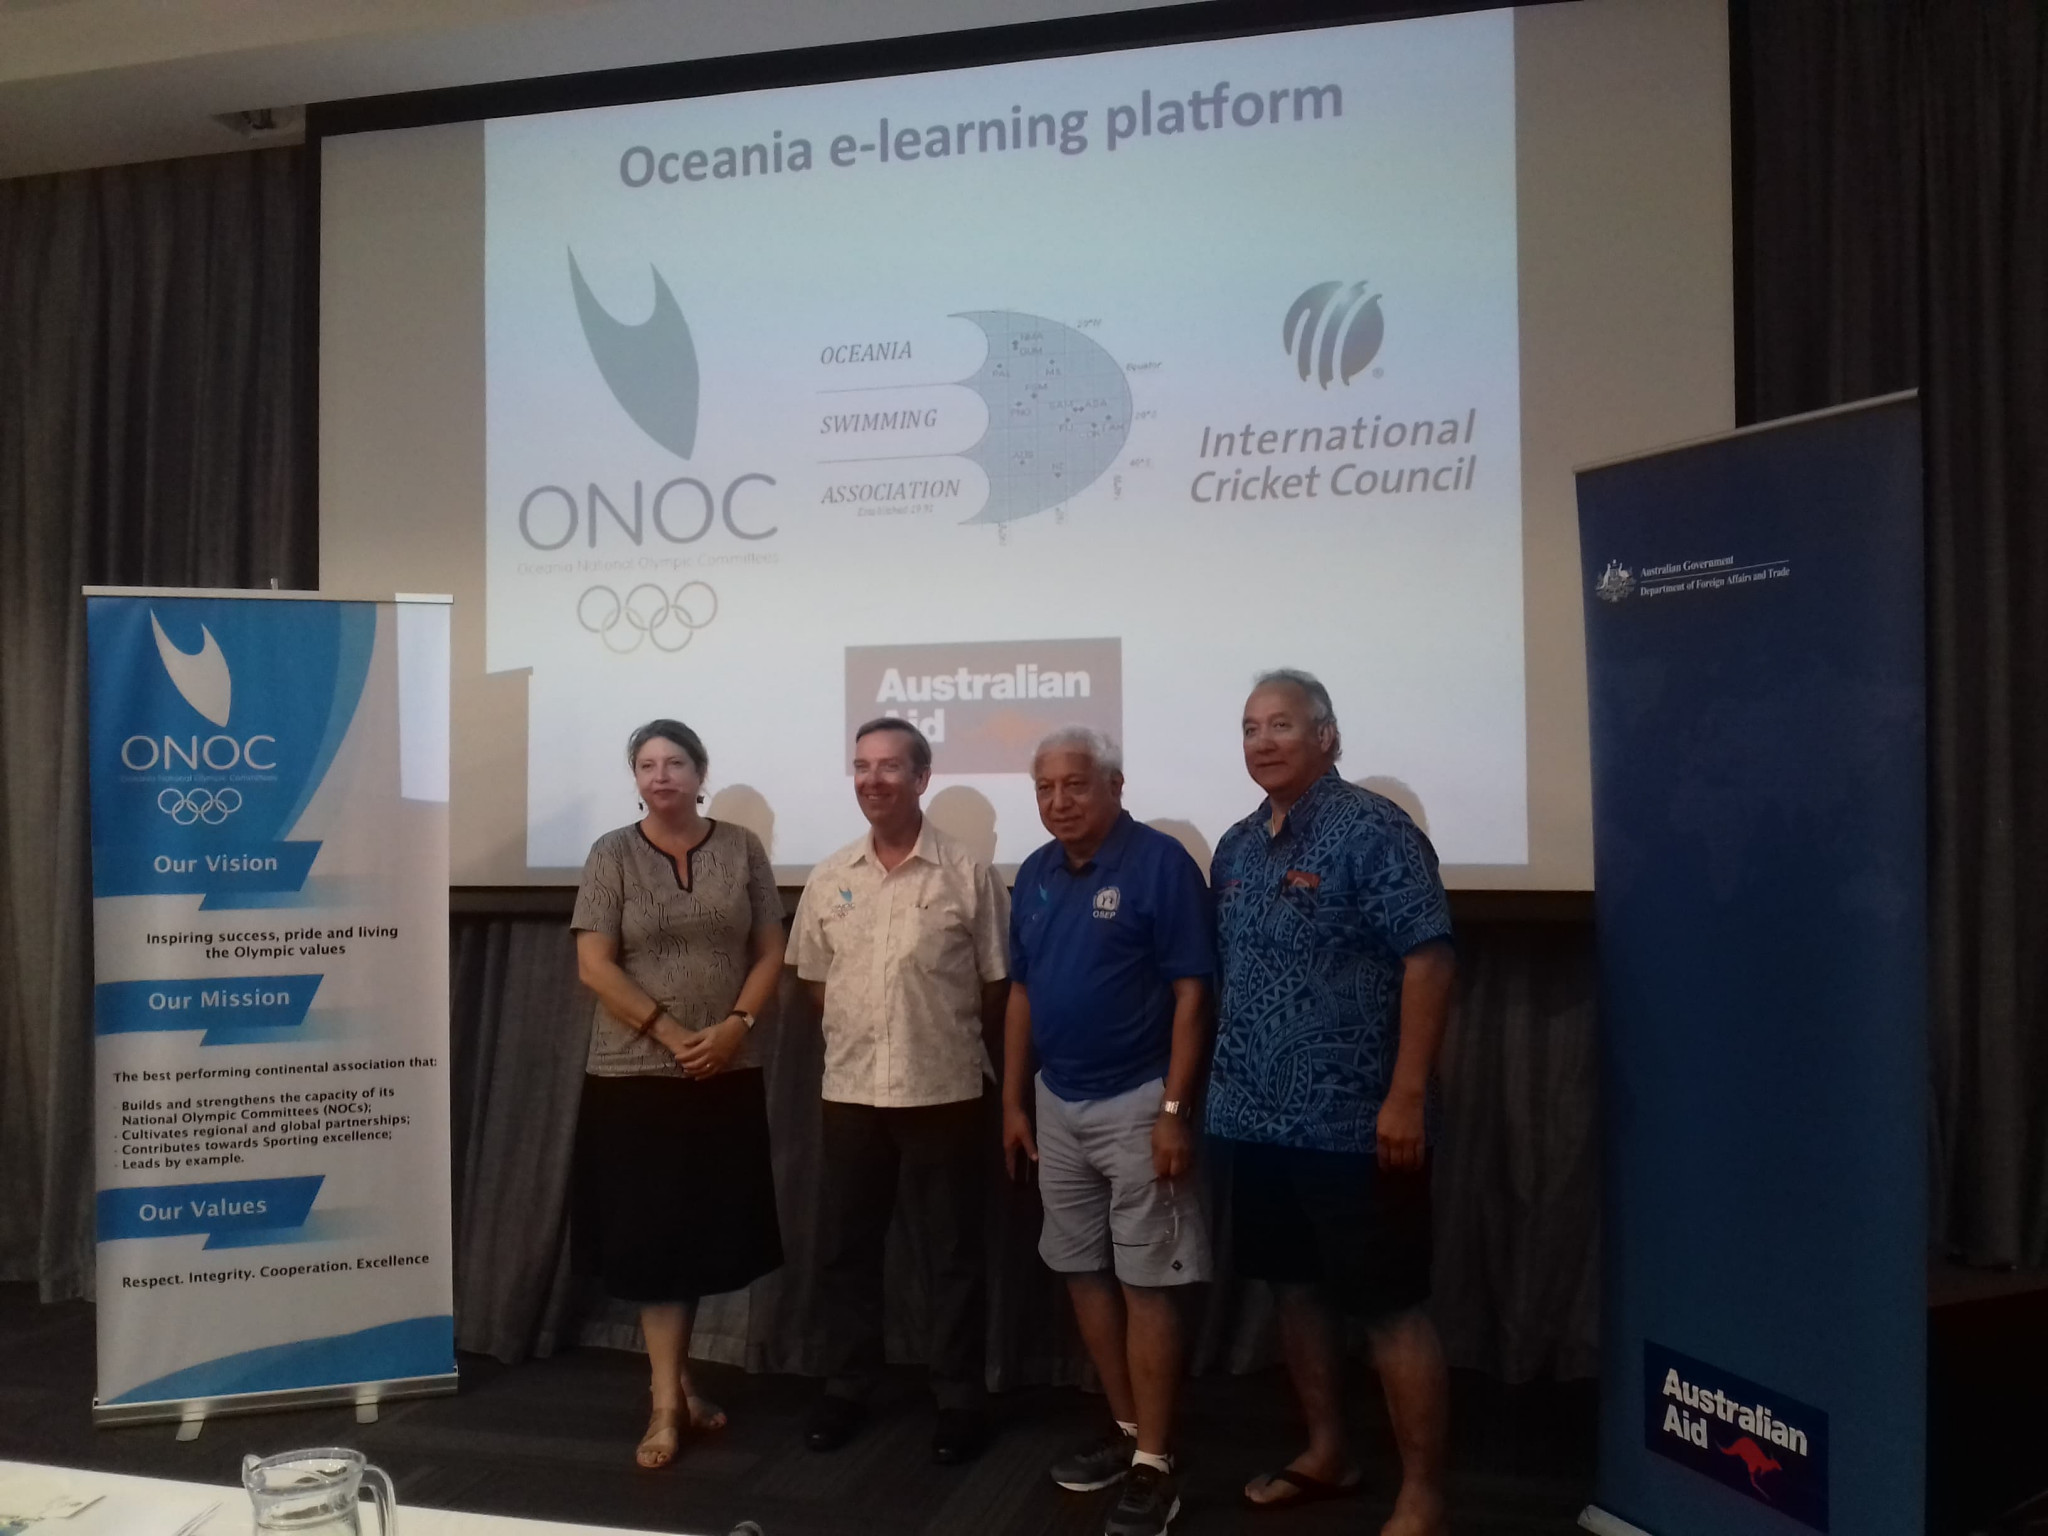 Australian High Commissioner to Samoa Sara Moriarty, left, joined ONOC officials to reveal the platform ©ITG